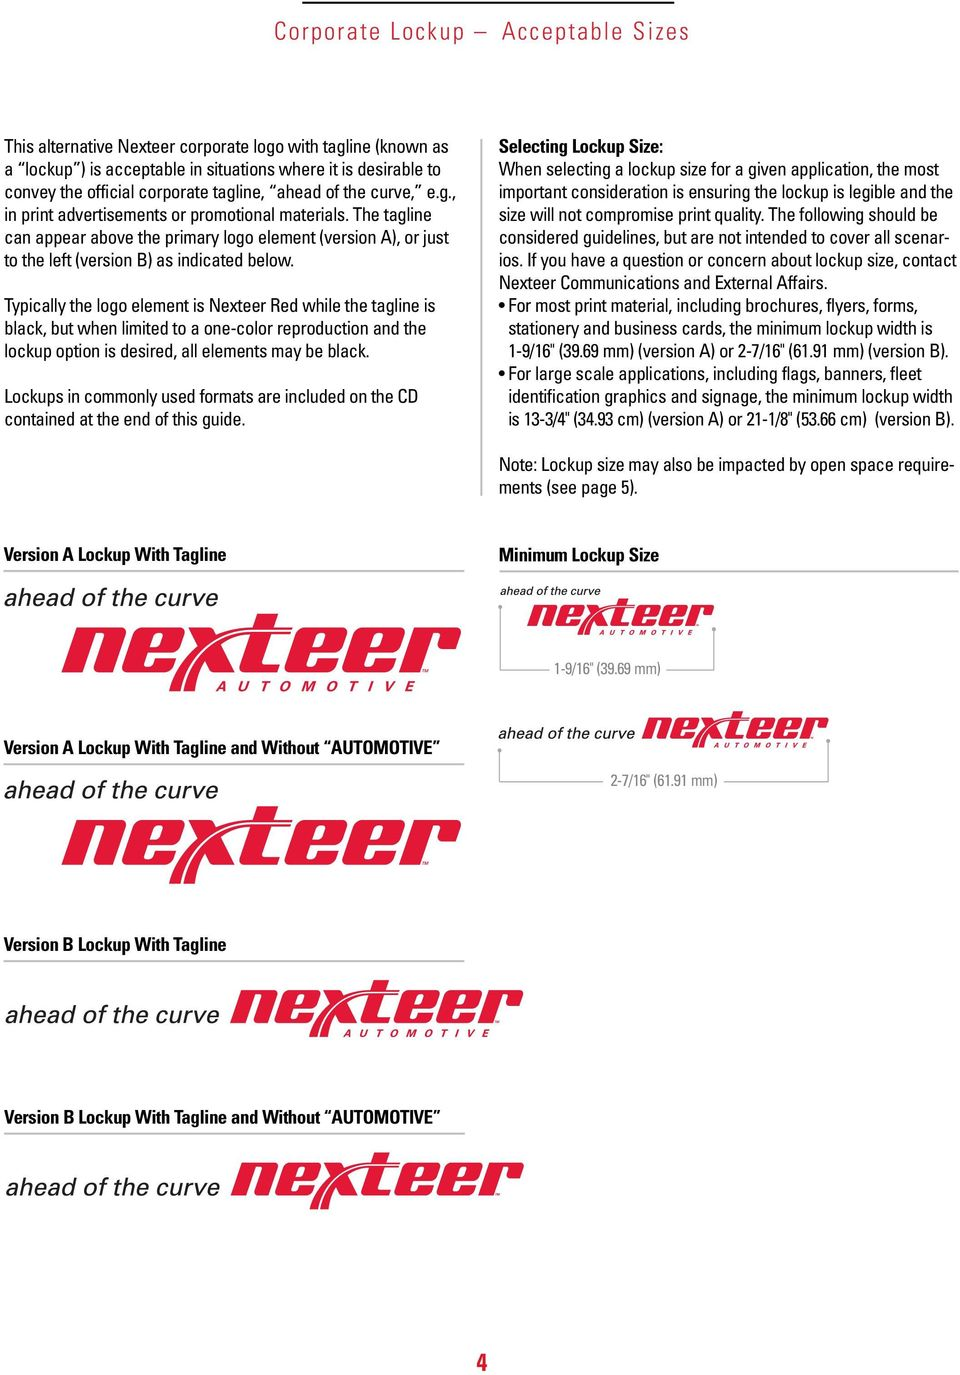 Typically the logo element is Nexteer Red while the tagline is black, but when limited to a one-color reproduction and the lockup option is desired, all elements may be black.